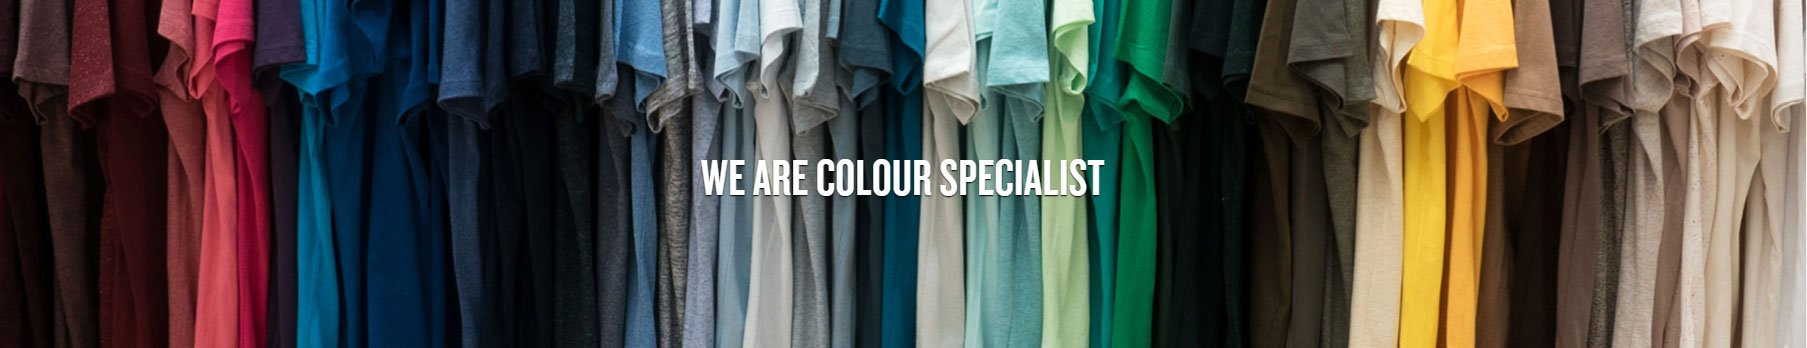 We are colour specialist